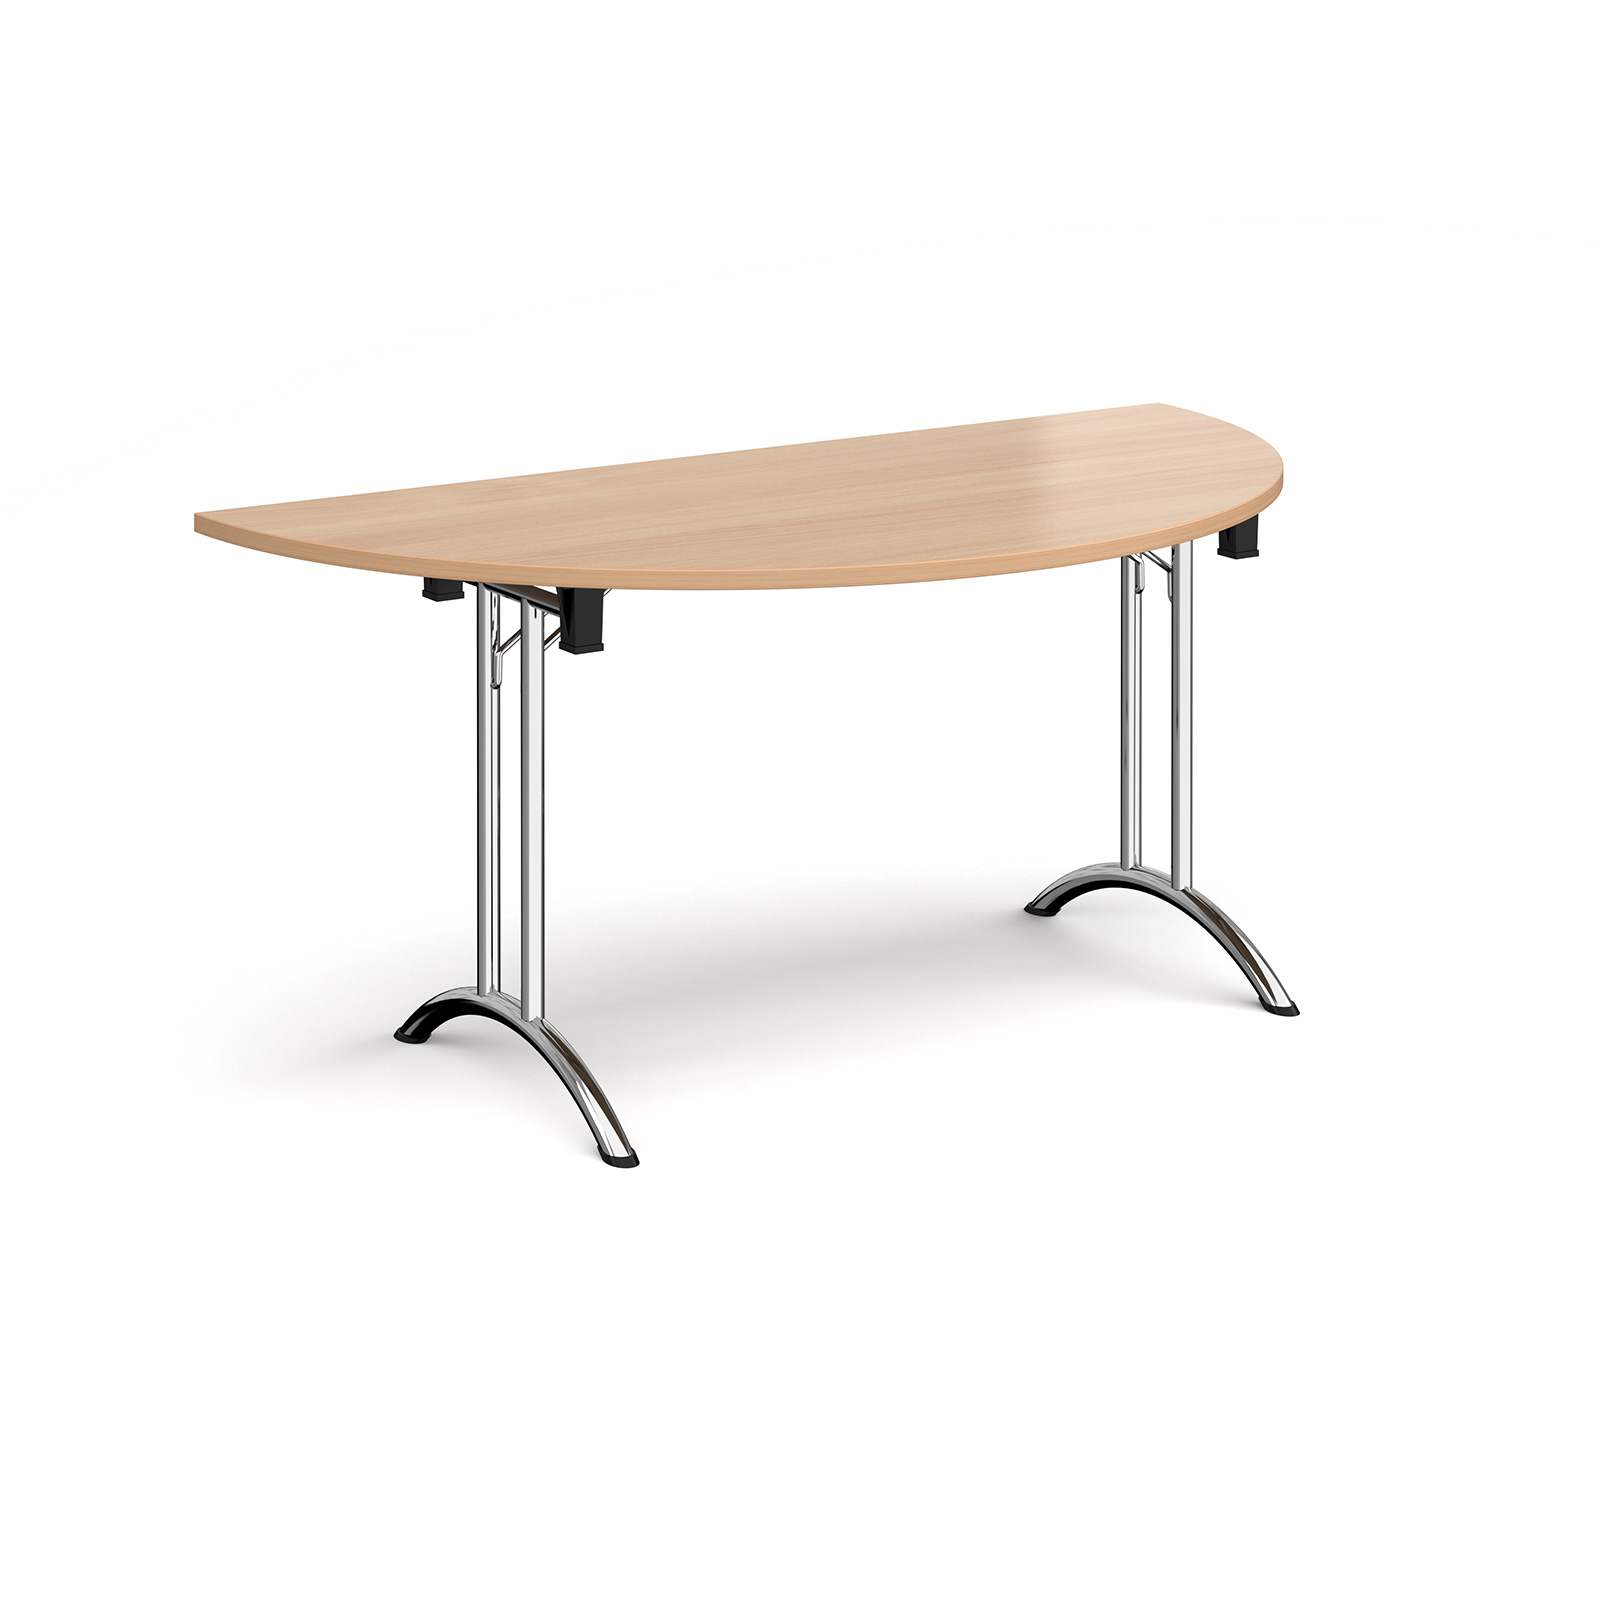 Boardroom / Meeting Semi circular folding leg table with curved feet